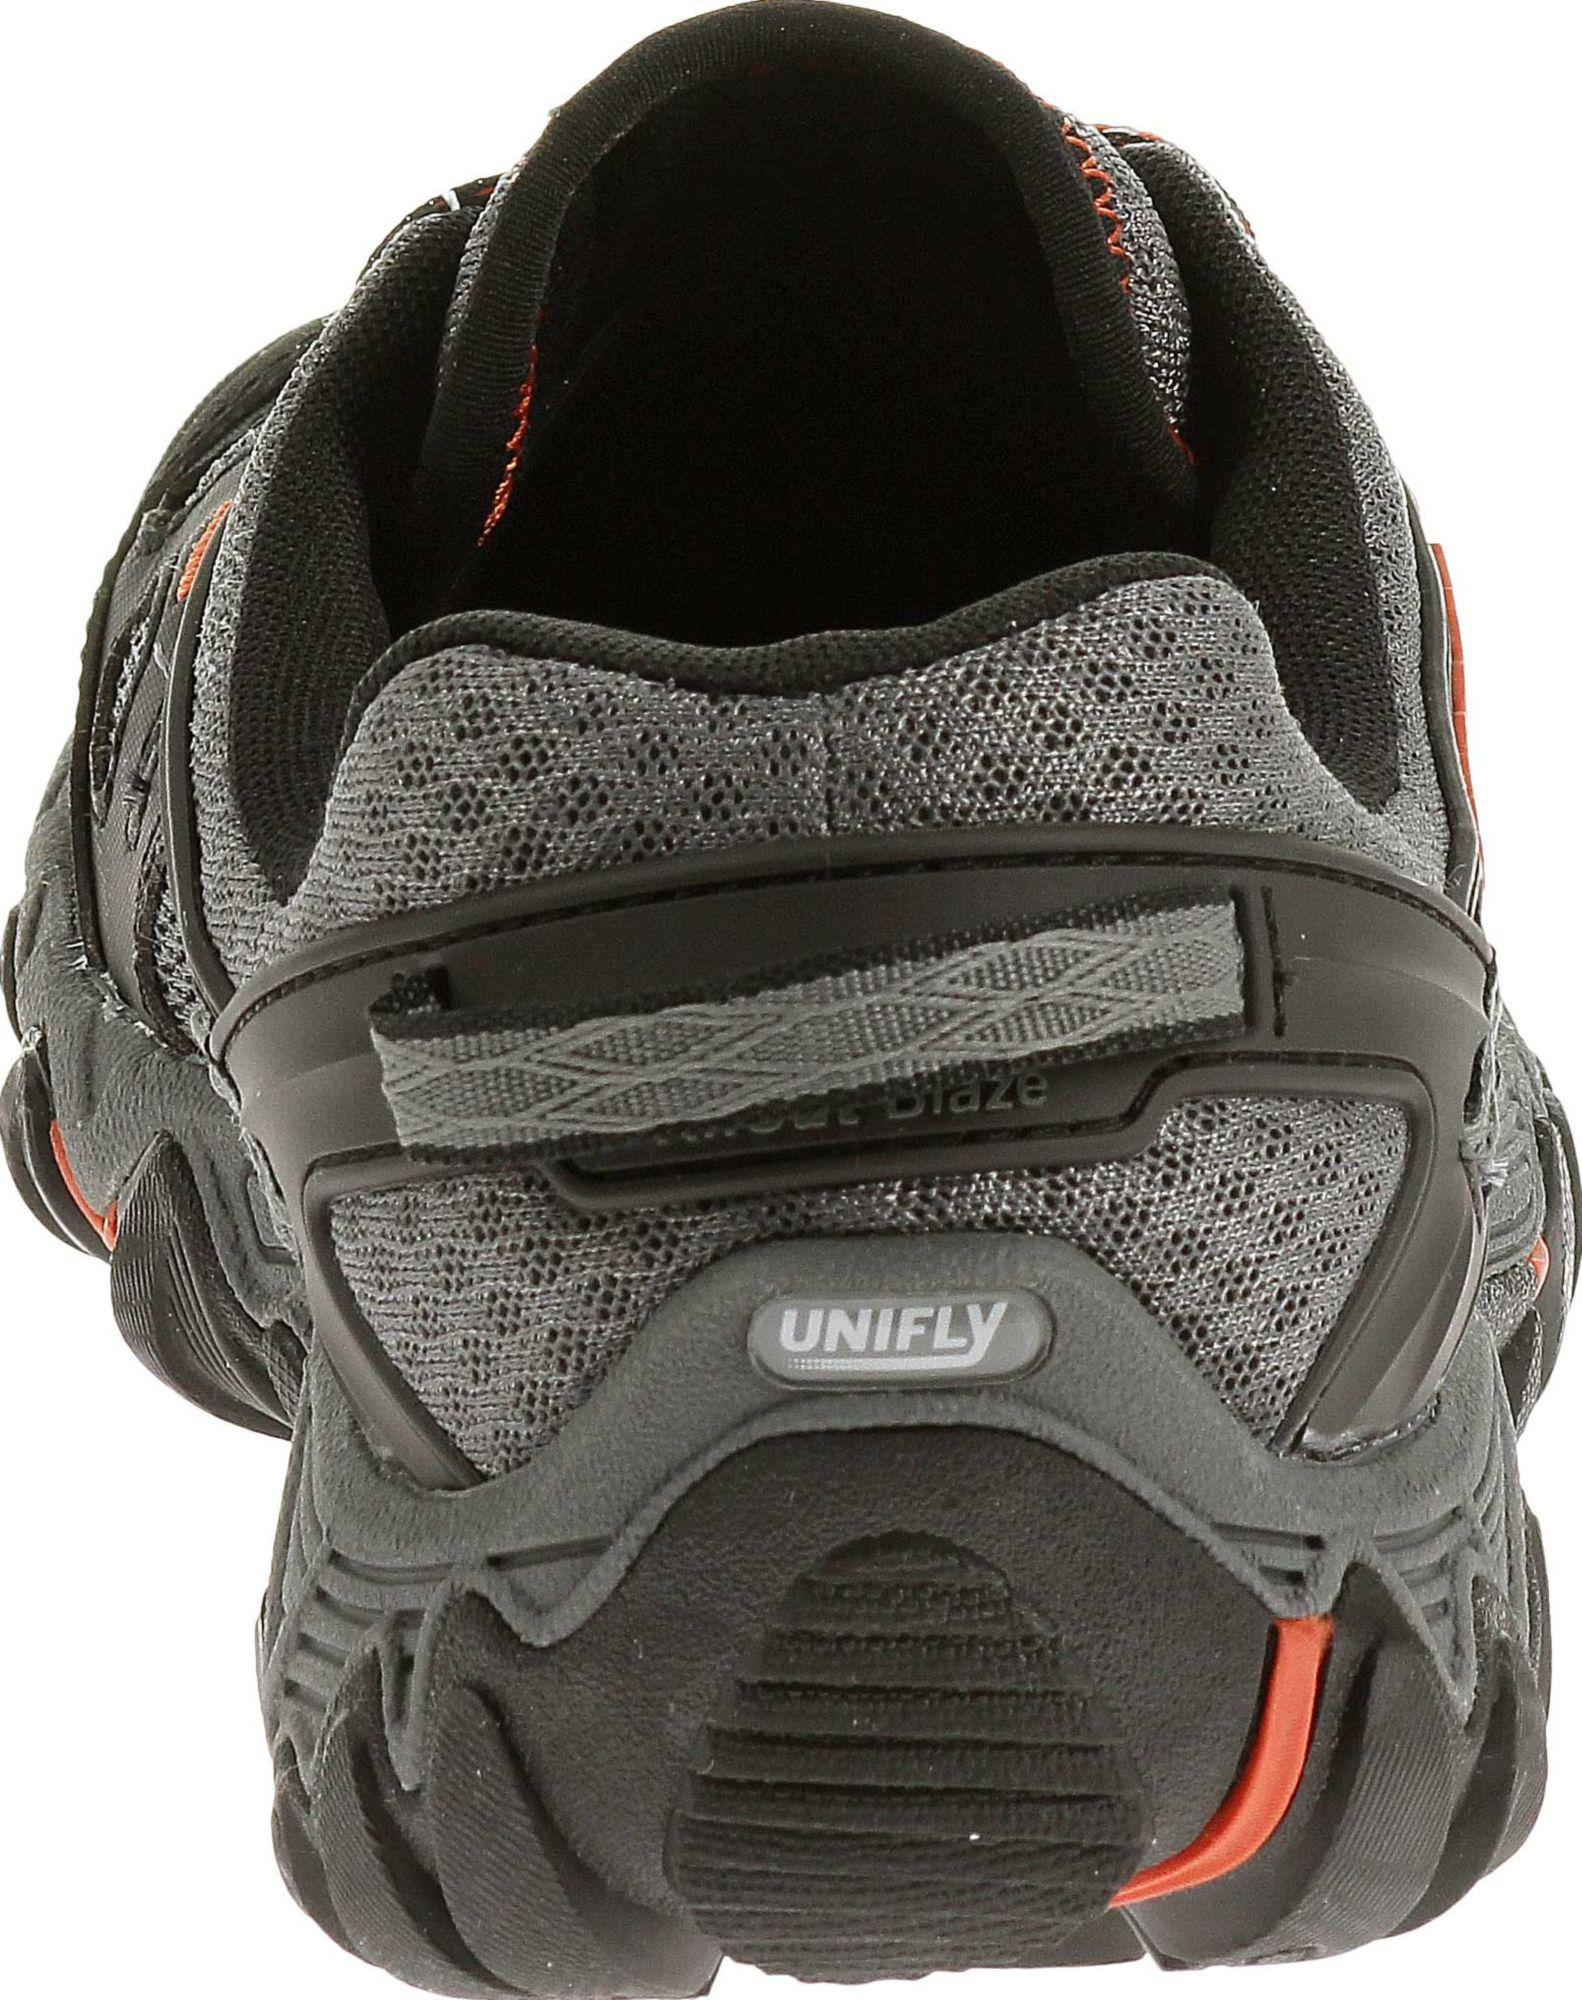 827d5a198abb Lyst - Merrell All Out Blaze Aero Sport Hiking Shoes in Black for Men